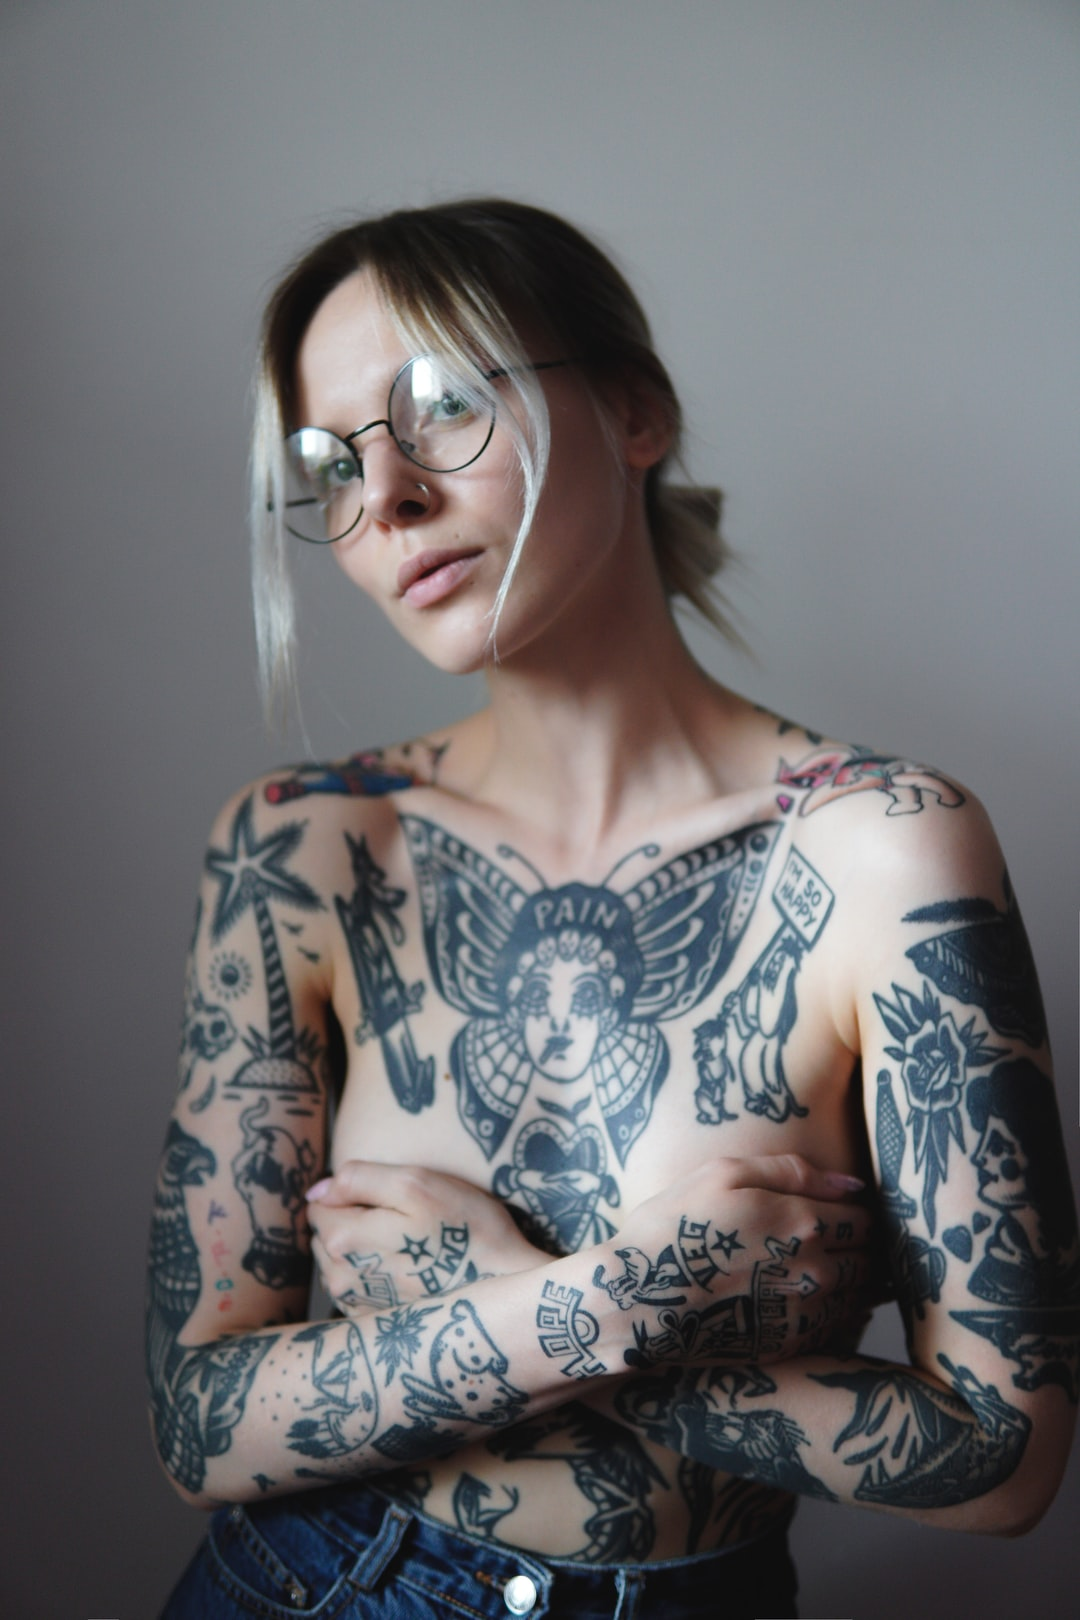 Tattoo Model Pictures | Download Free Images on Unsplash